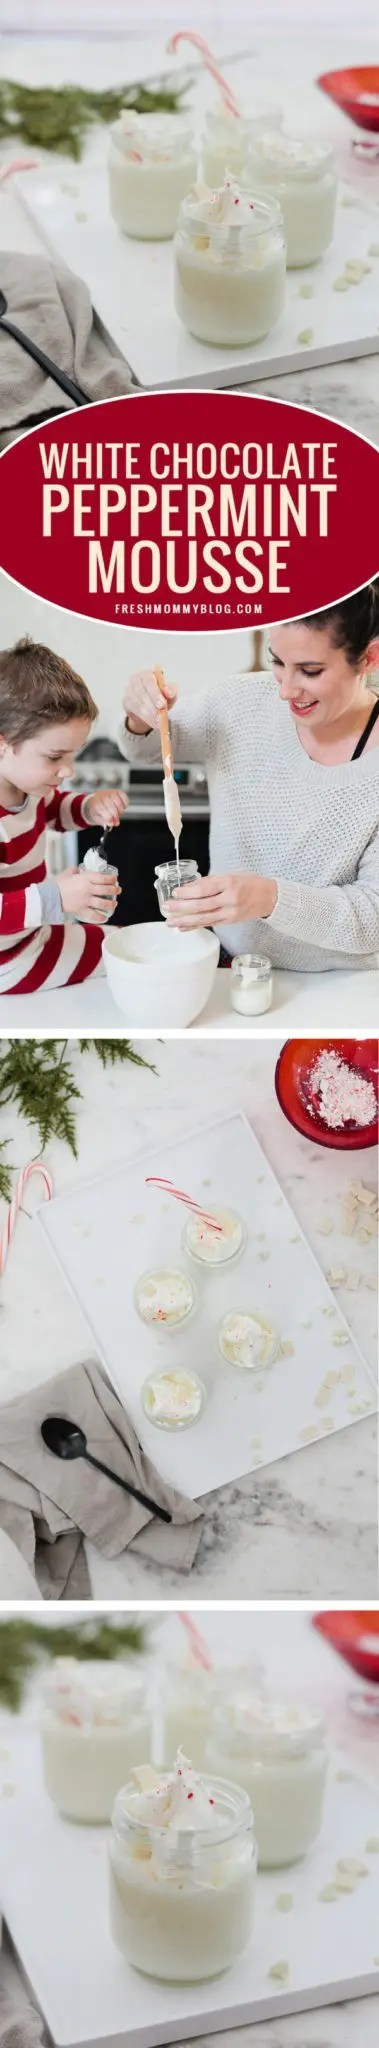 The Best White Chocolate Peppermint Mousse